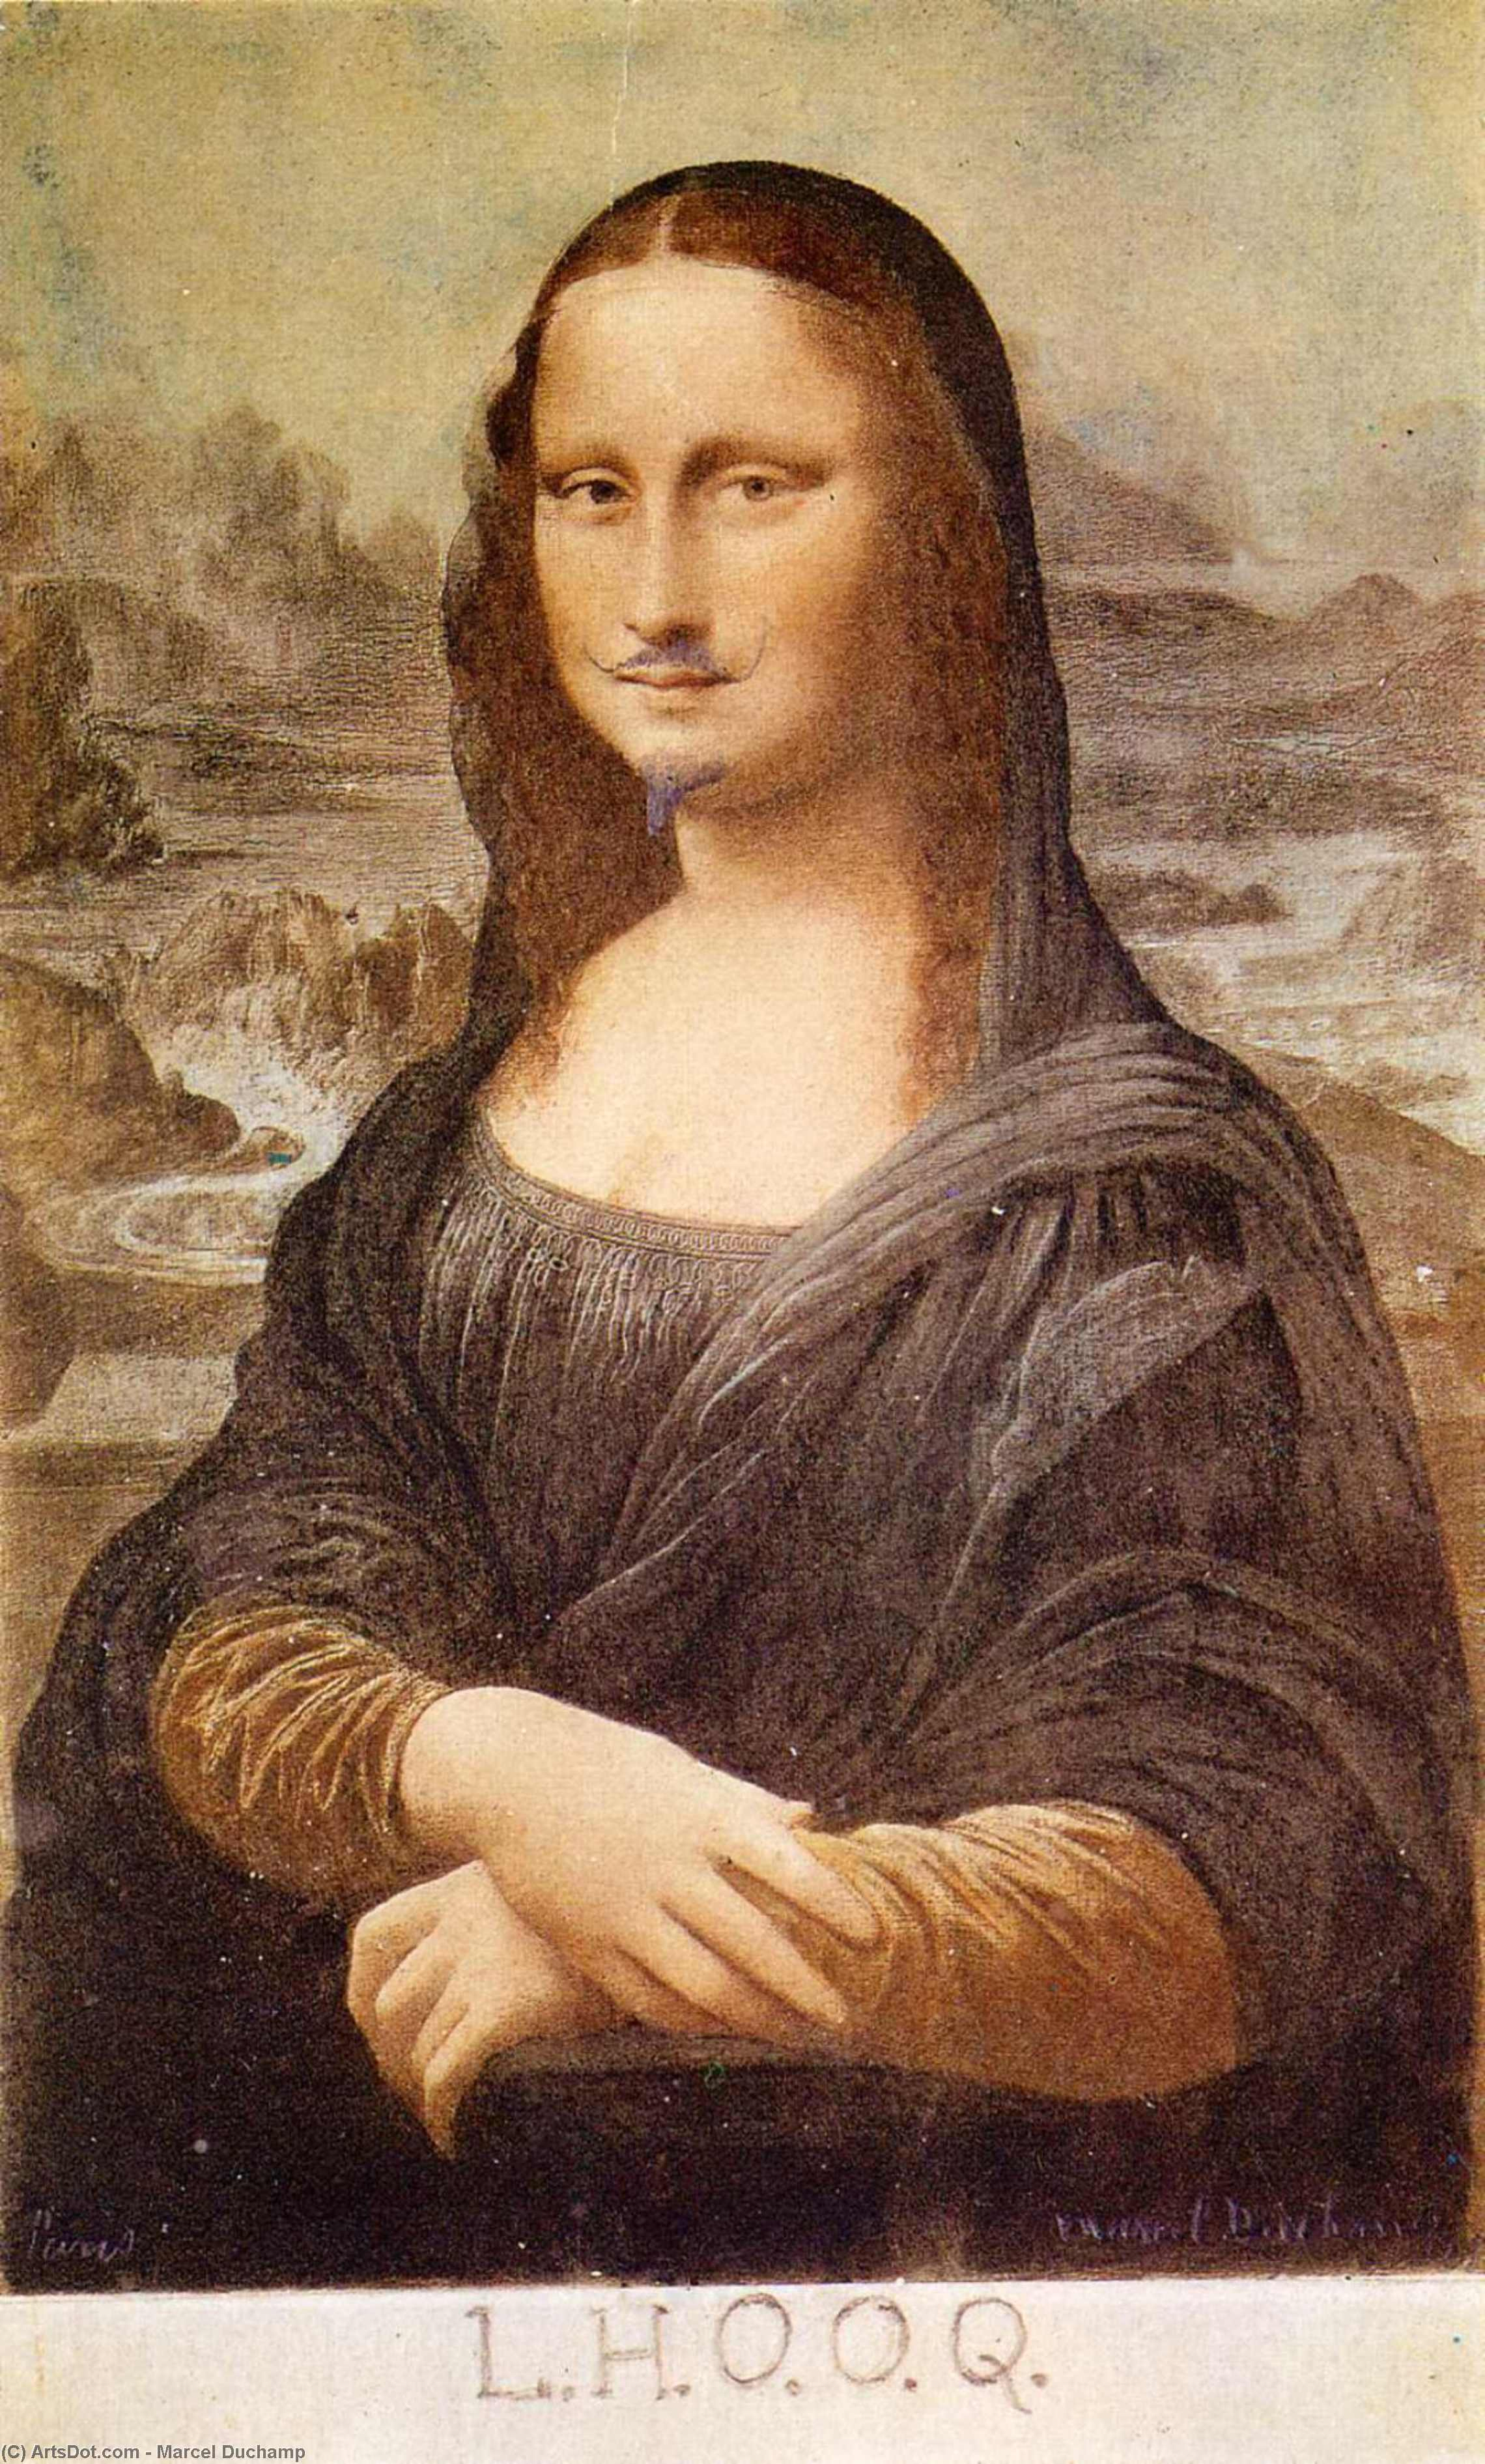 Wikioo.org - The Encyclopedia of Fine Arts - Painting, Artwork by Marcel Duchamp - L.H.O.O.Q, Mona Lisa with moustache